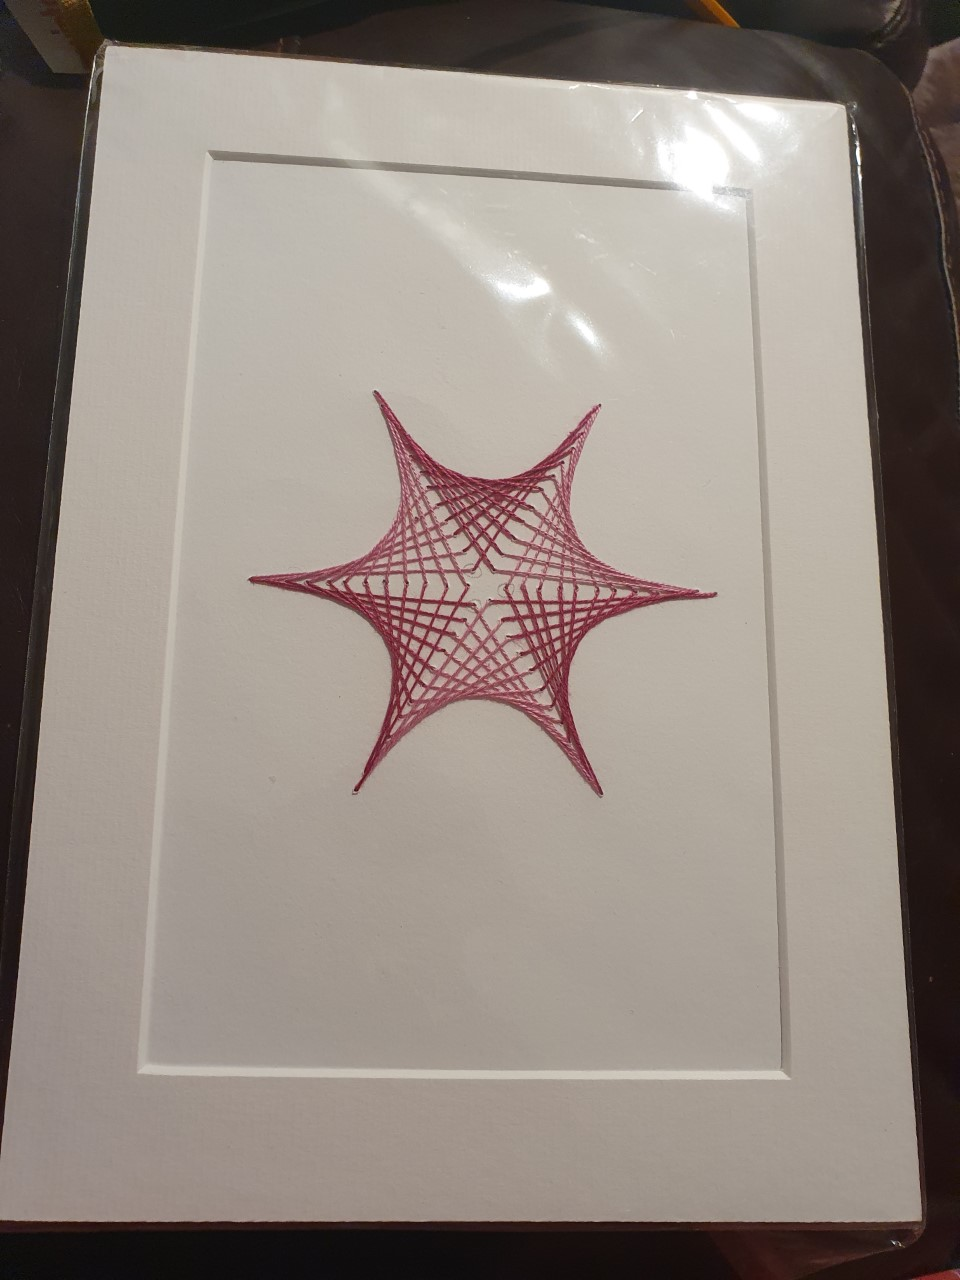 String Art Work- Leo Codrington-Lambert (15) & Jayden-John Costa-Codrington (10)